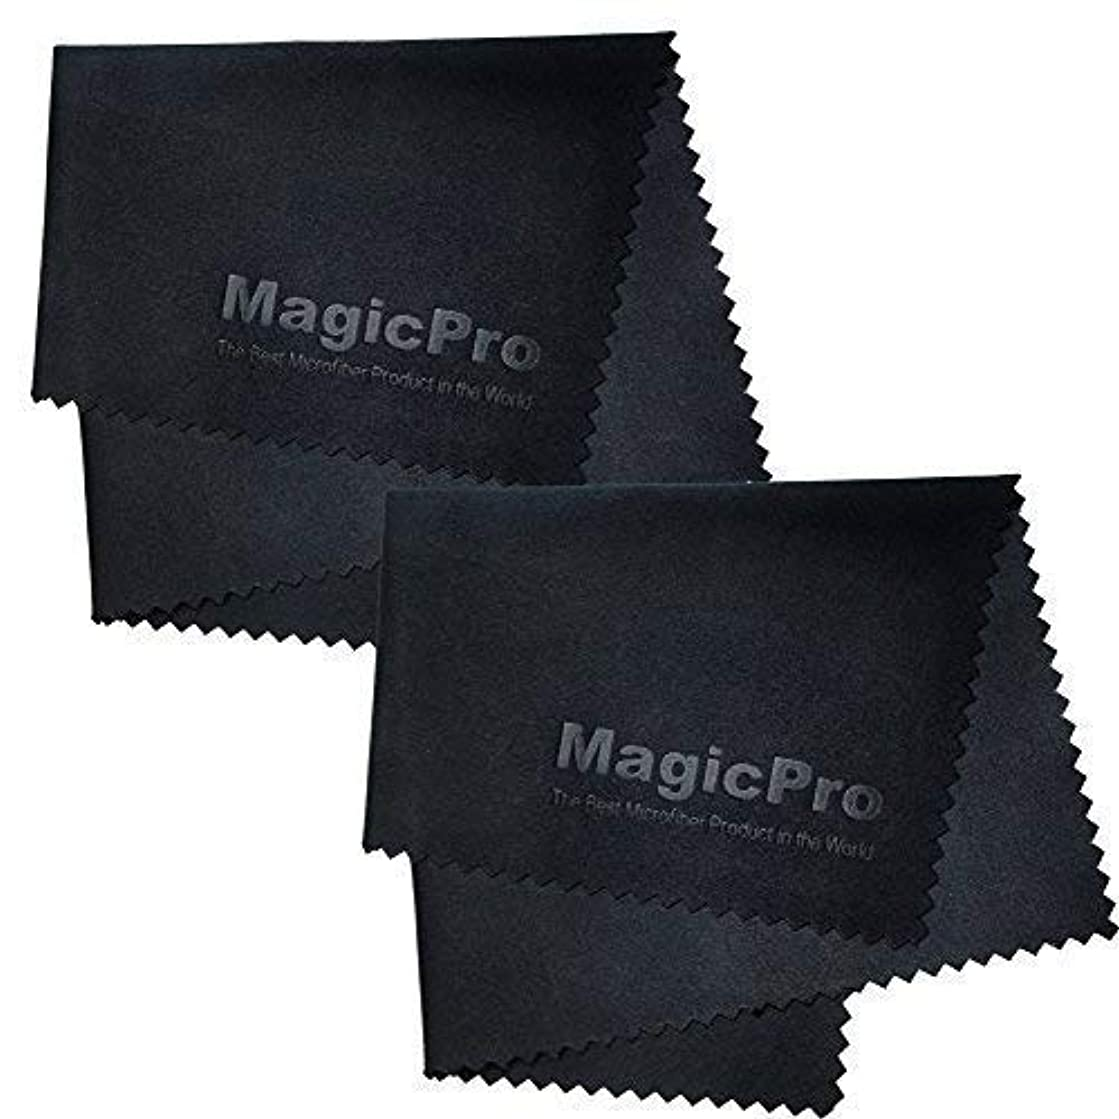 Microfiber Cloth, Microfiber Cleaning Cloths - For All LCD Screens, Eyeglasses, Sunglasses, Tablets, Lenses, and Other Delicate Surfaces 6